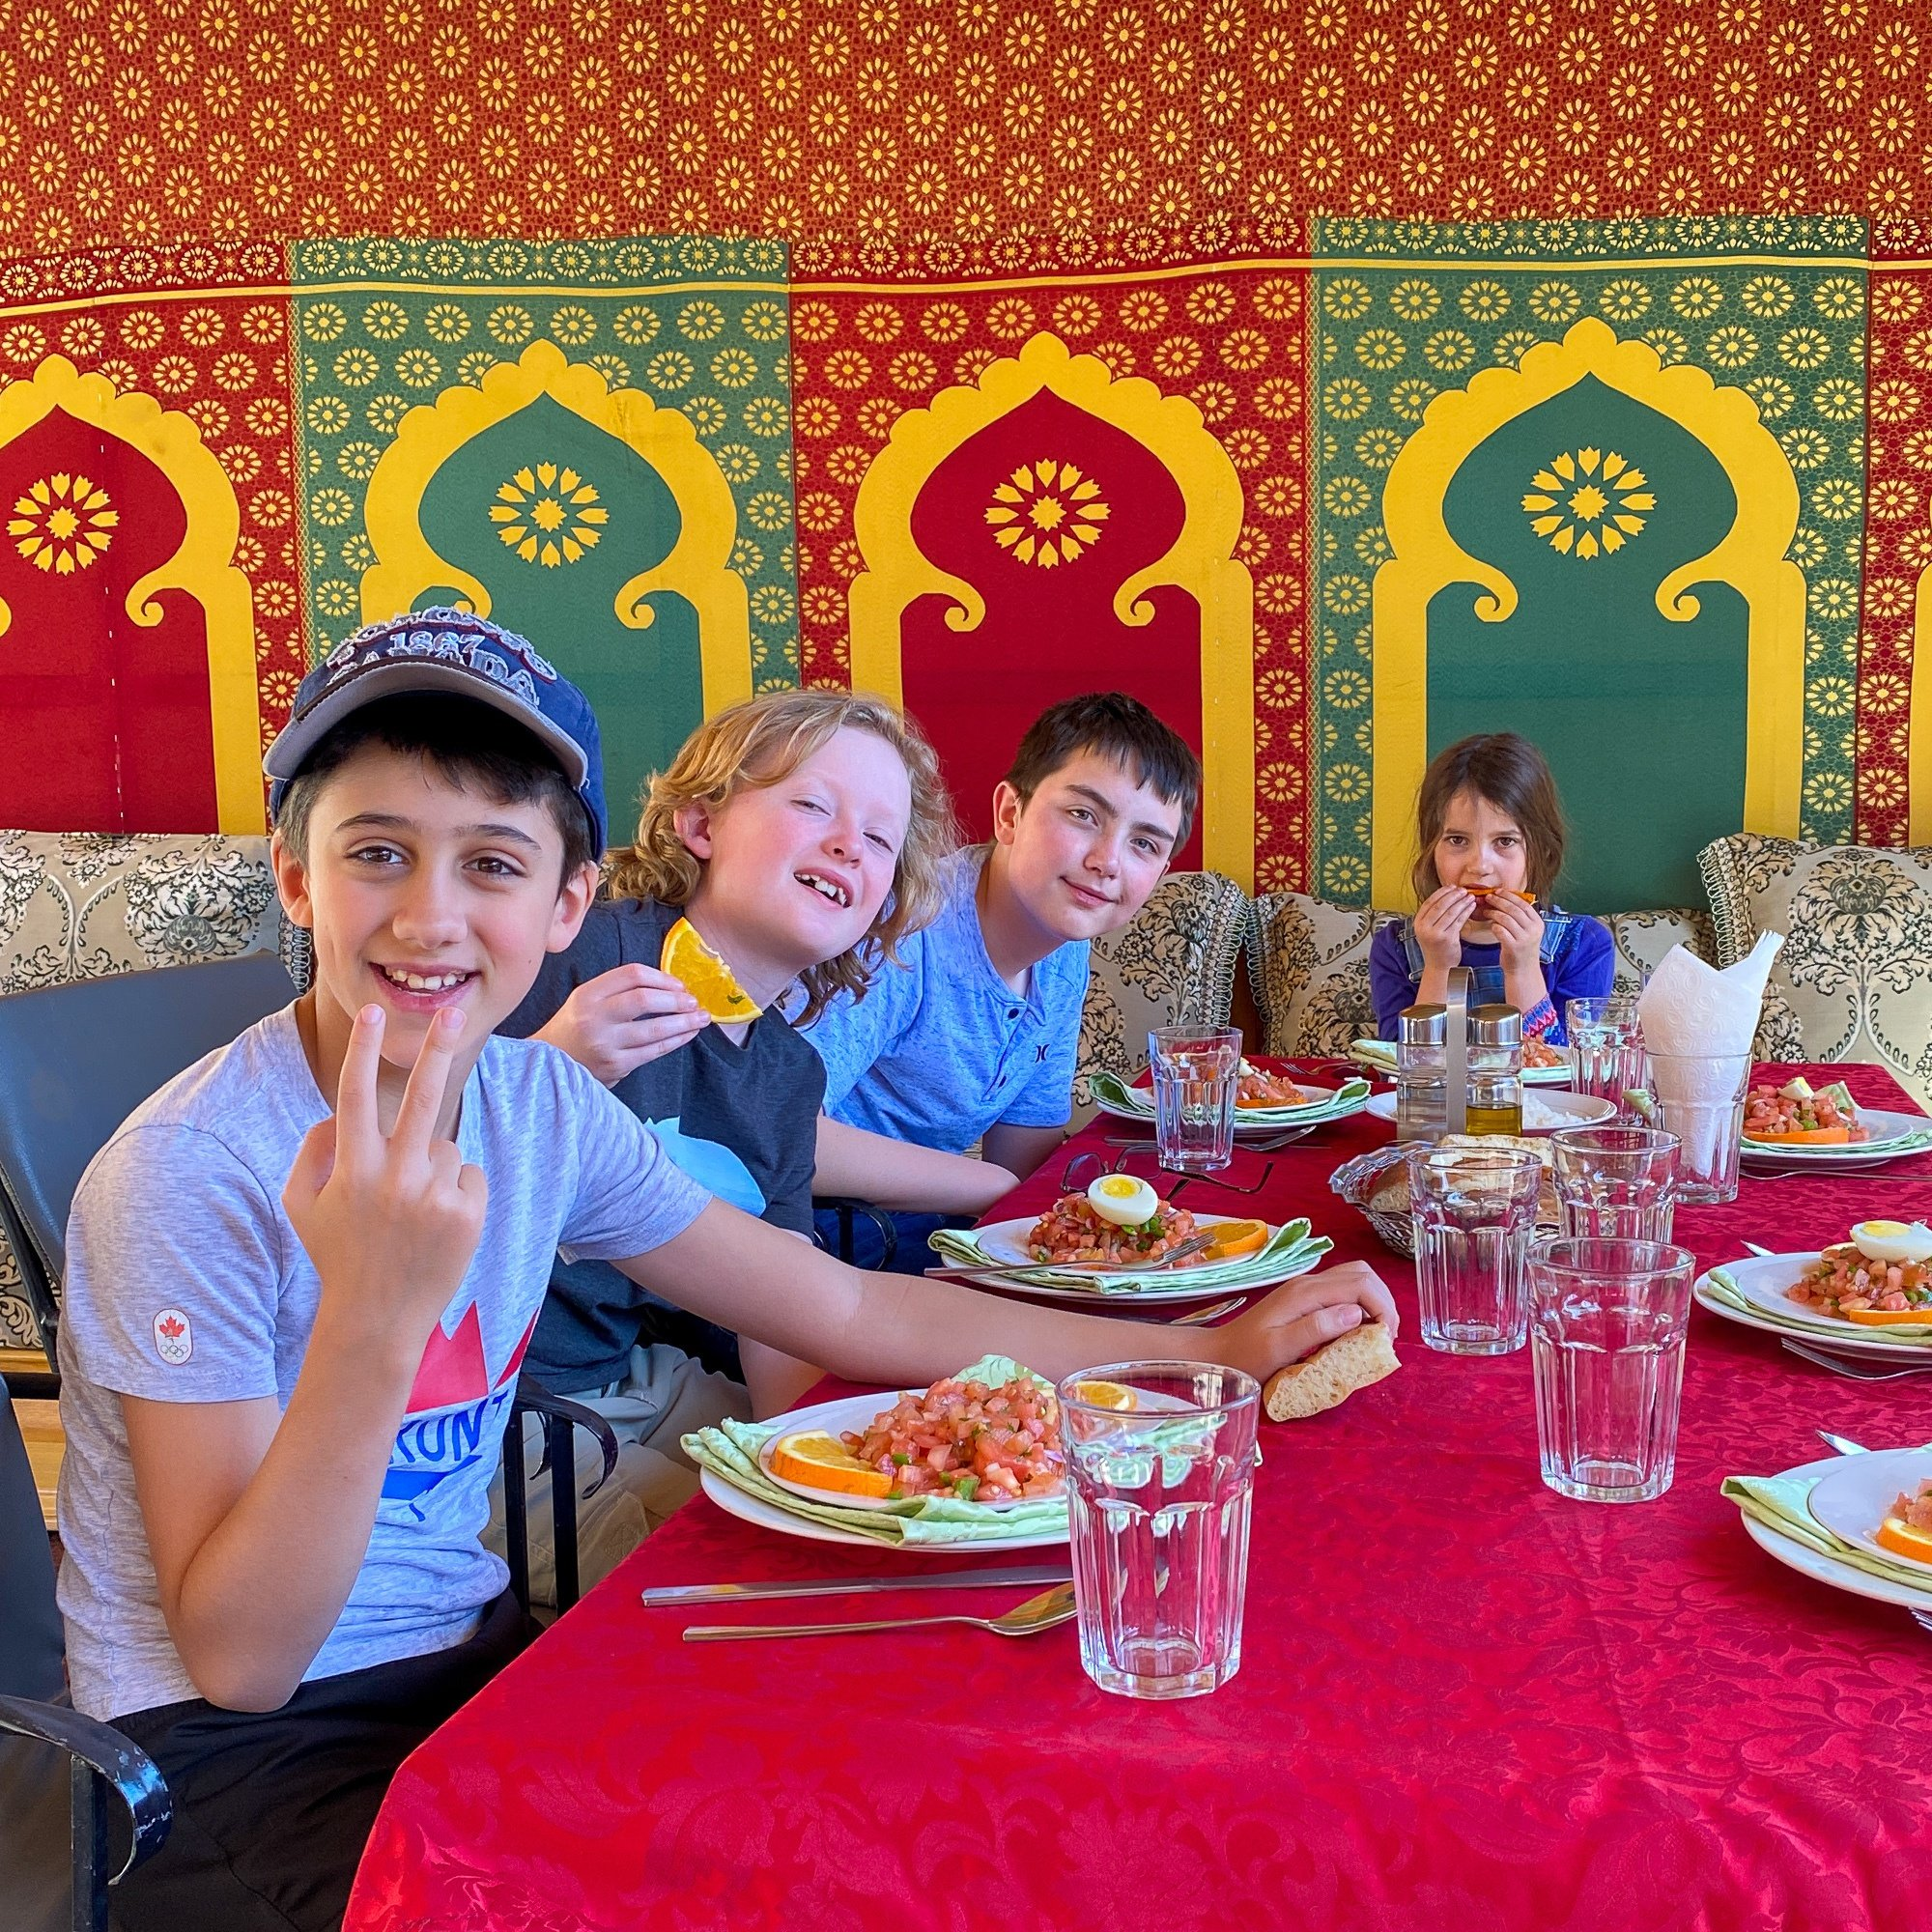 Kids dining together on our National Geographic Family Journeys and G Adventures tour